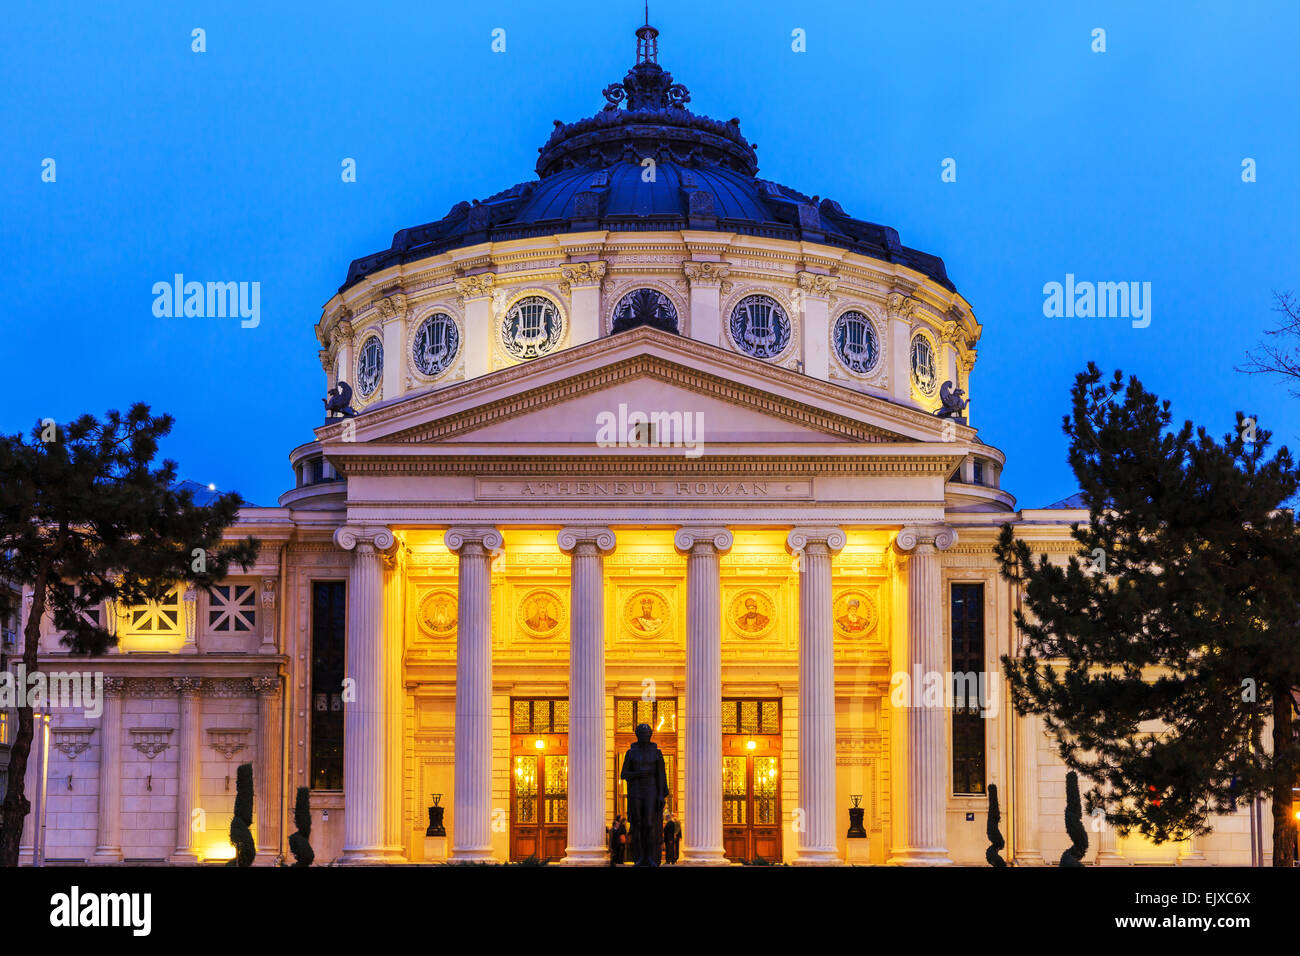 Romanian Athenaeum Bucharest. - Stock Image